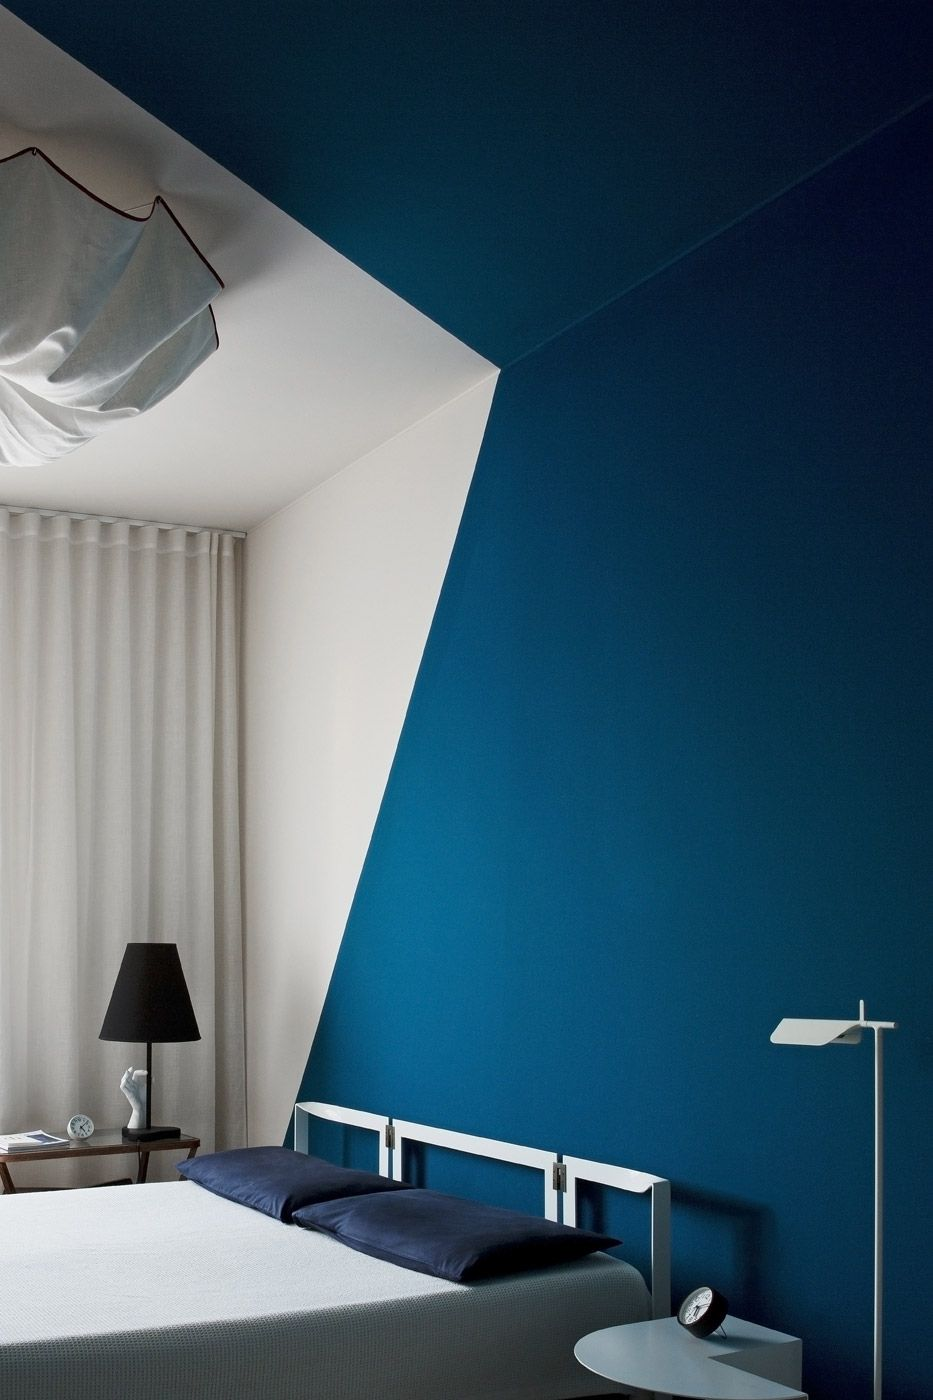 Ways To Use Duck Egg Blue To Spruce Up Your Living Room Decor Bedroom Wall Paint Interior Wall Paint Bedroom Wall Designs Blue minimalist room paint